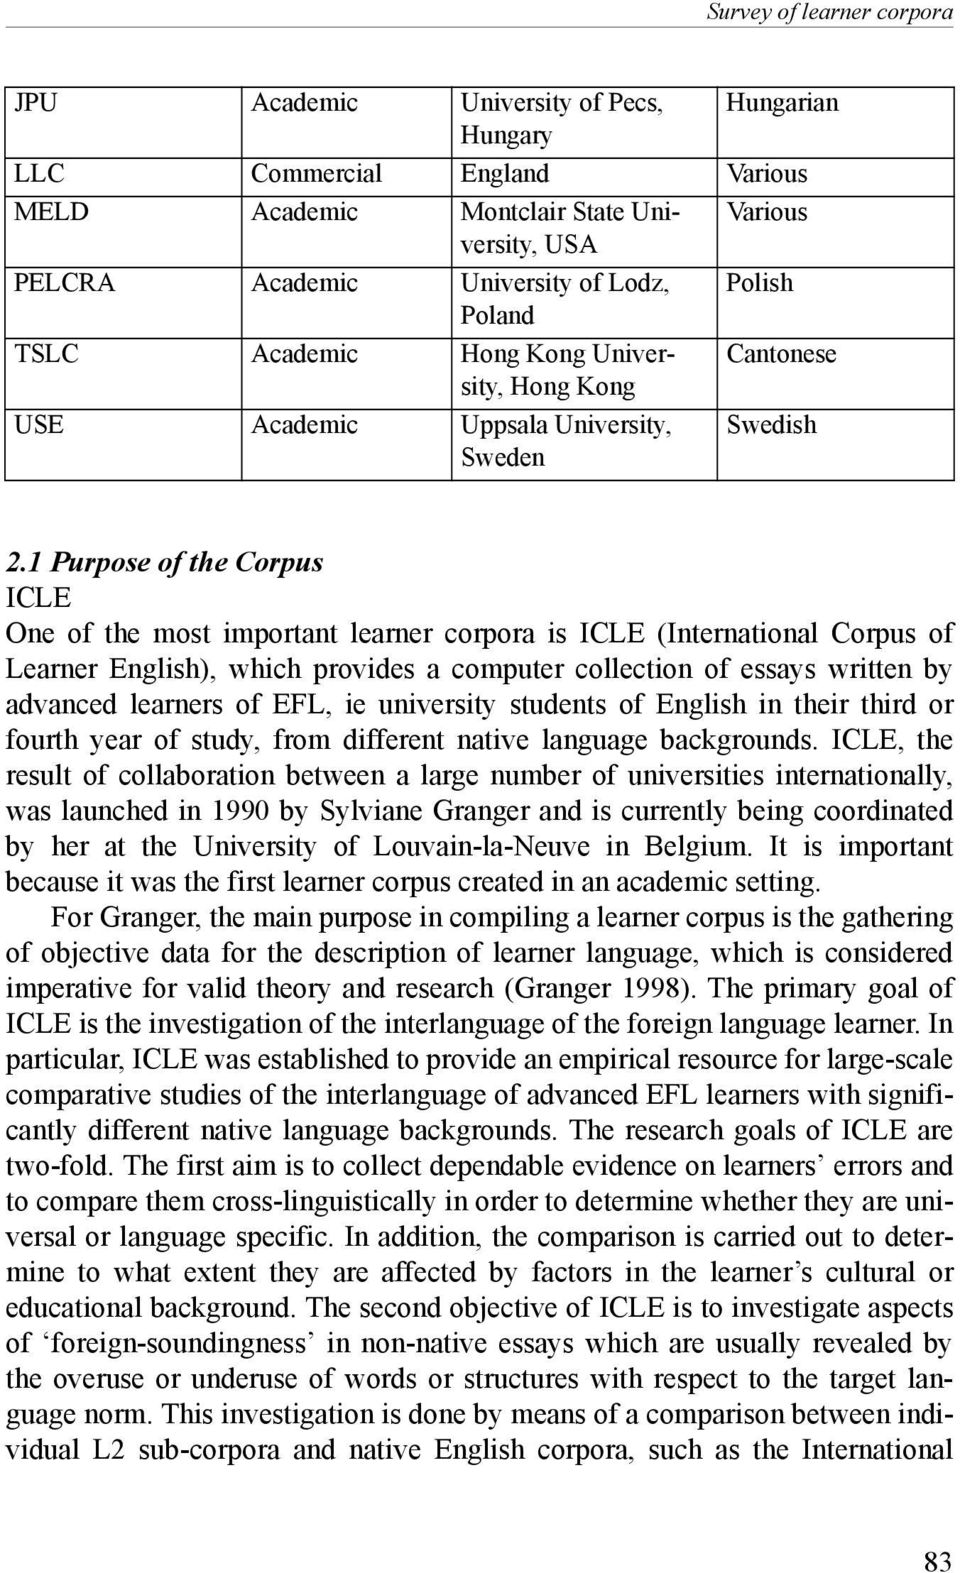 1 Purpose of the Corpus ICLE One of the most important learner corpora is ICLE (International Corpus of Learner English), which provides a computer collection of essays written by advanced learners